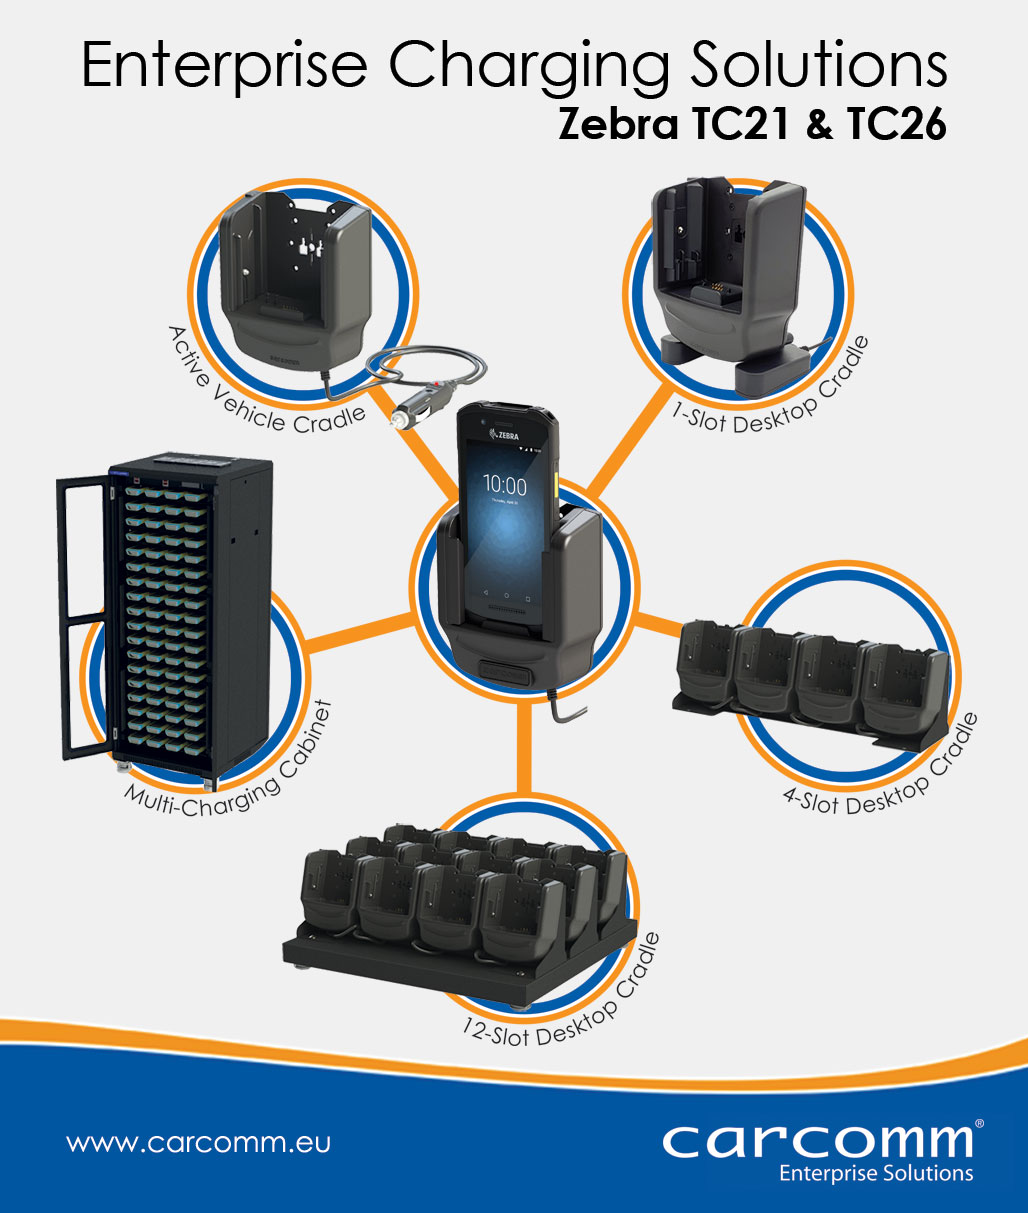 Enterprise Charging Solutions Zebra TC21 & Zebra TC26